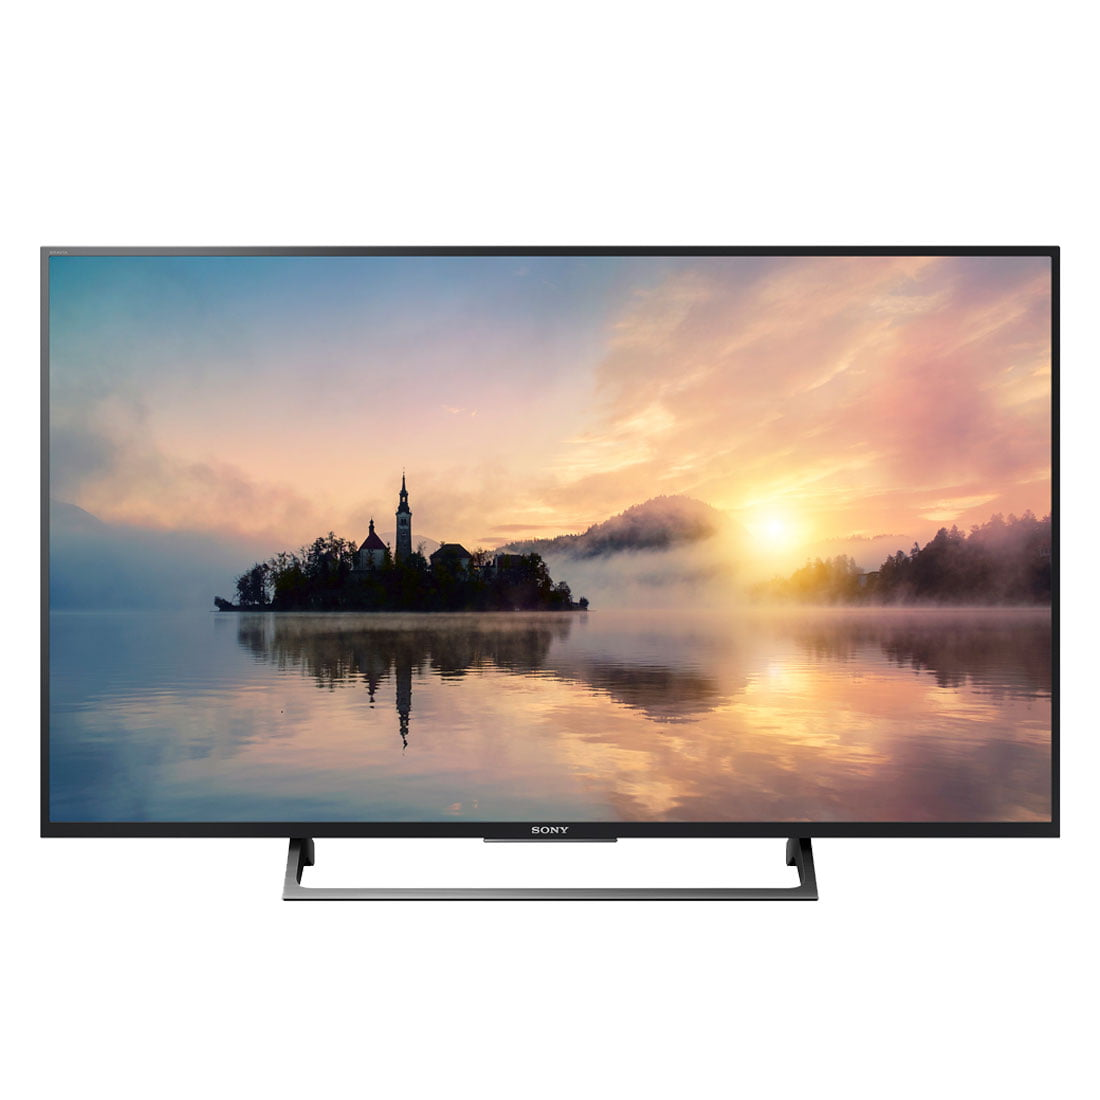 2419525 2 further Product furthermore Sony Bravia 40 22 LCD TV likewise Sonys New A8f Oled Tv Isnt Any Cheaper Than The Old One also A Review Of The Sony Xbr65x950b 65 Inch 4k Ultra Hd 120hz 3d Smart Led Tv 2014 Model. on sony bravia 37 inch